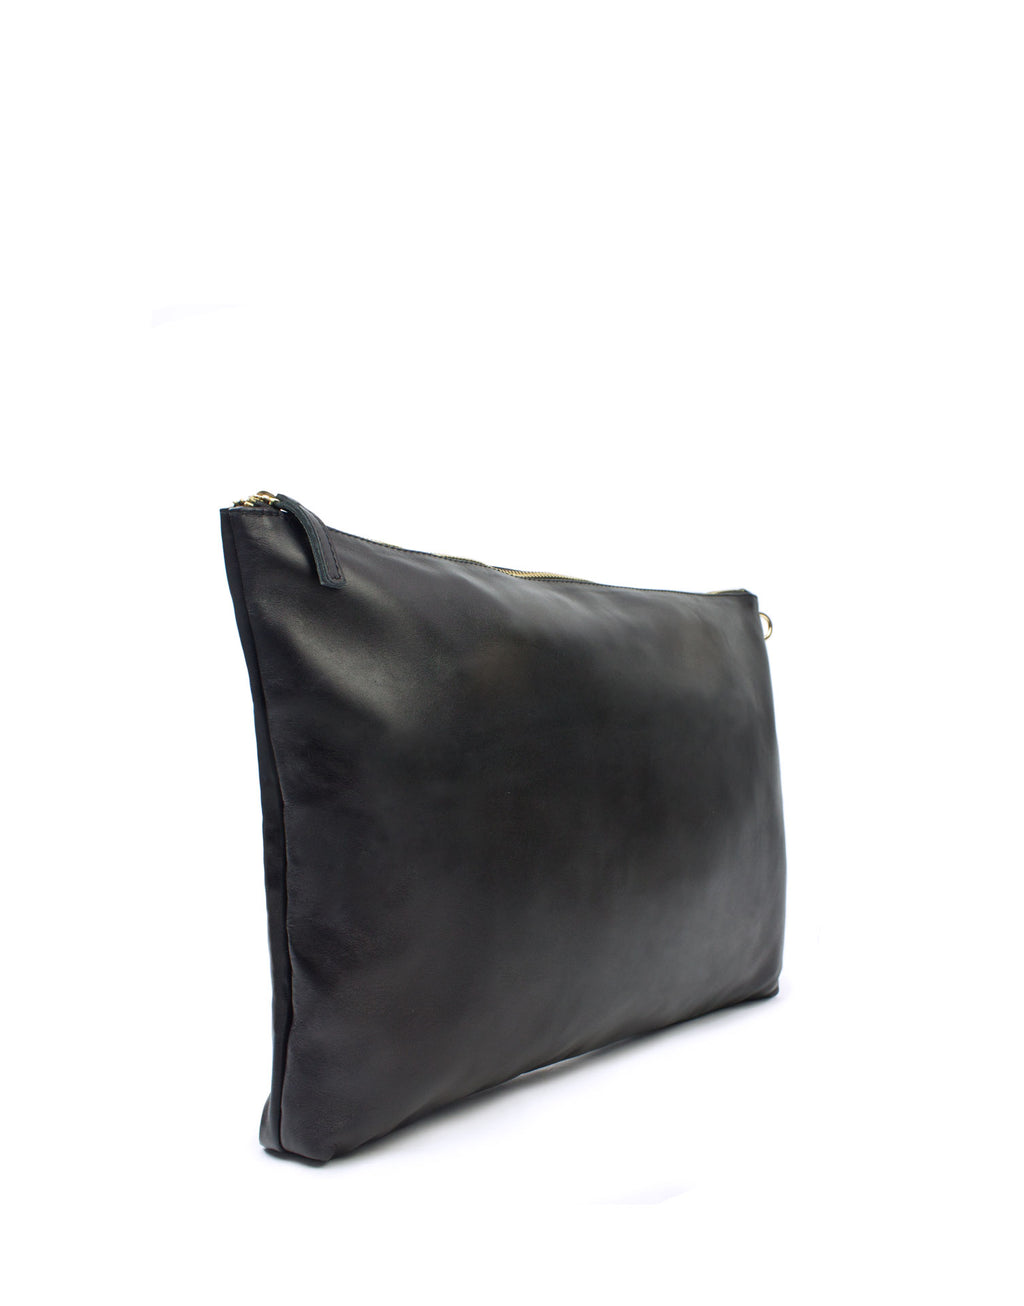 Oversized soft black leather by London designer Georgina Goodman with unique black striped cotton lining. This oversized clutch will fit your laptop or tablet.